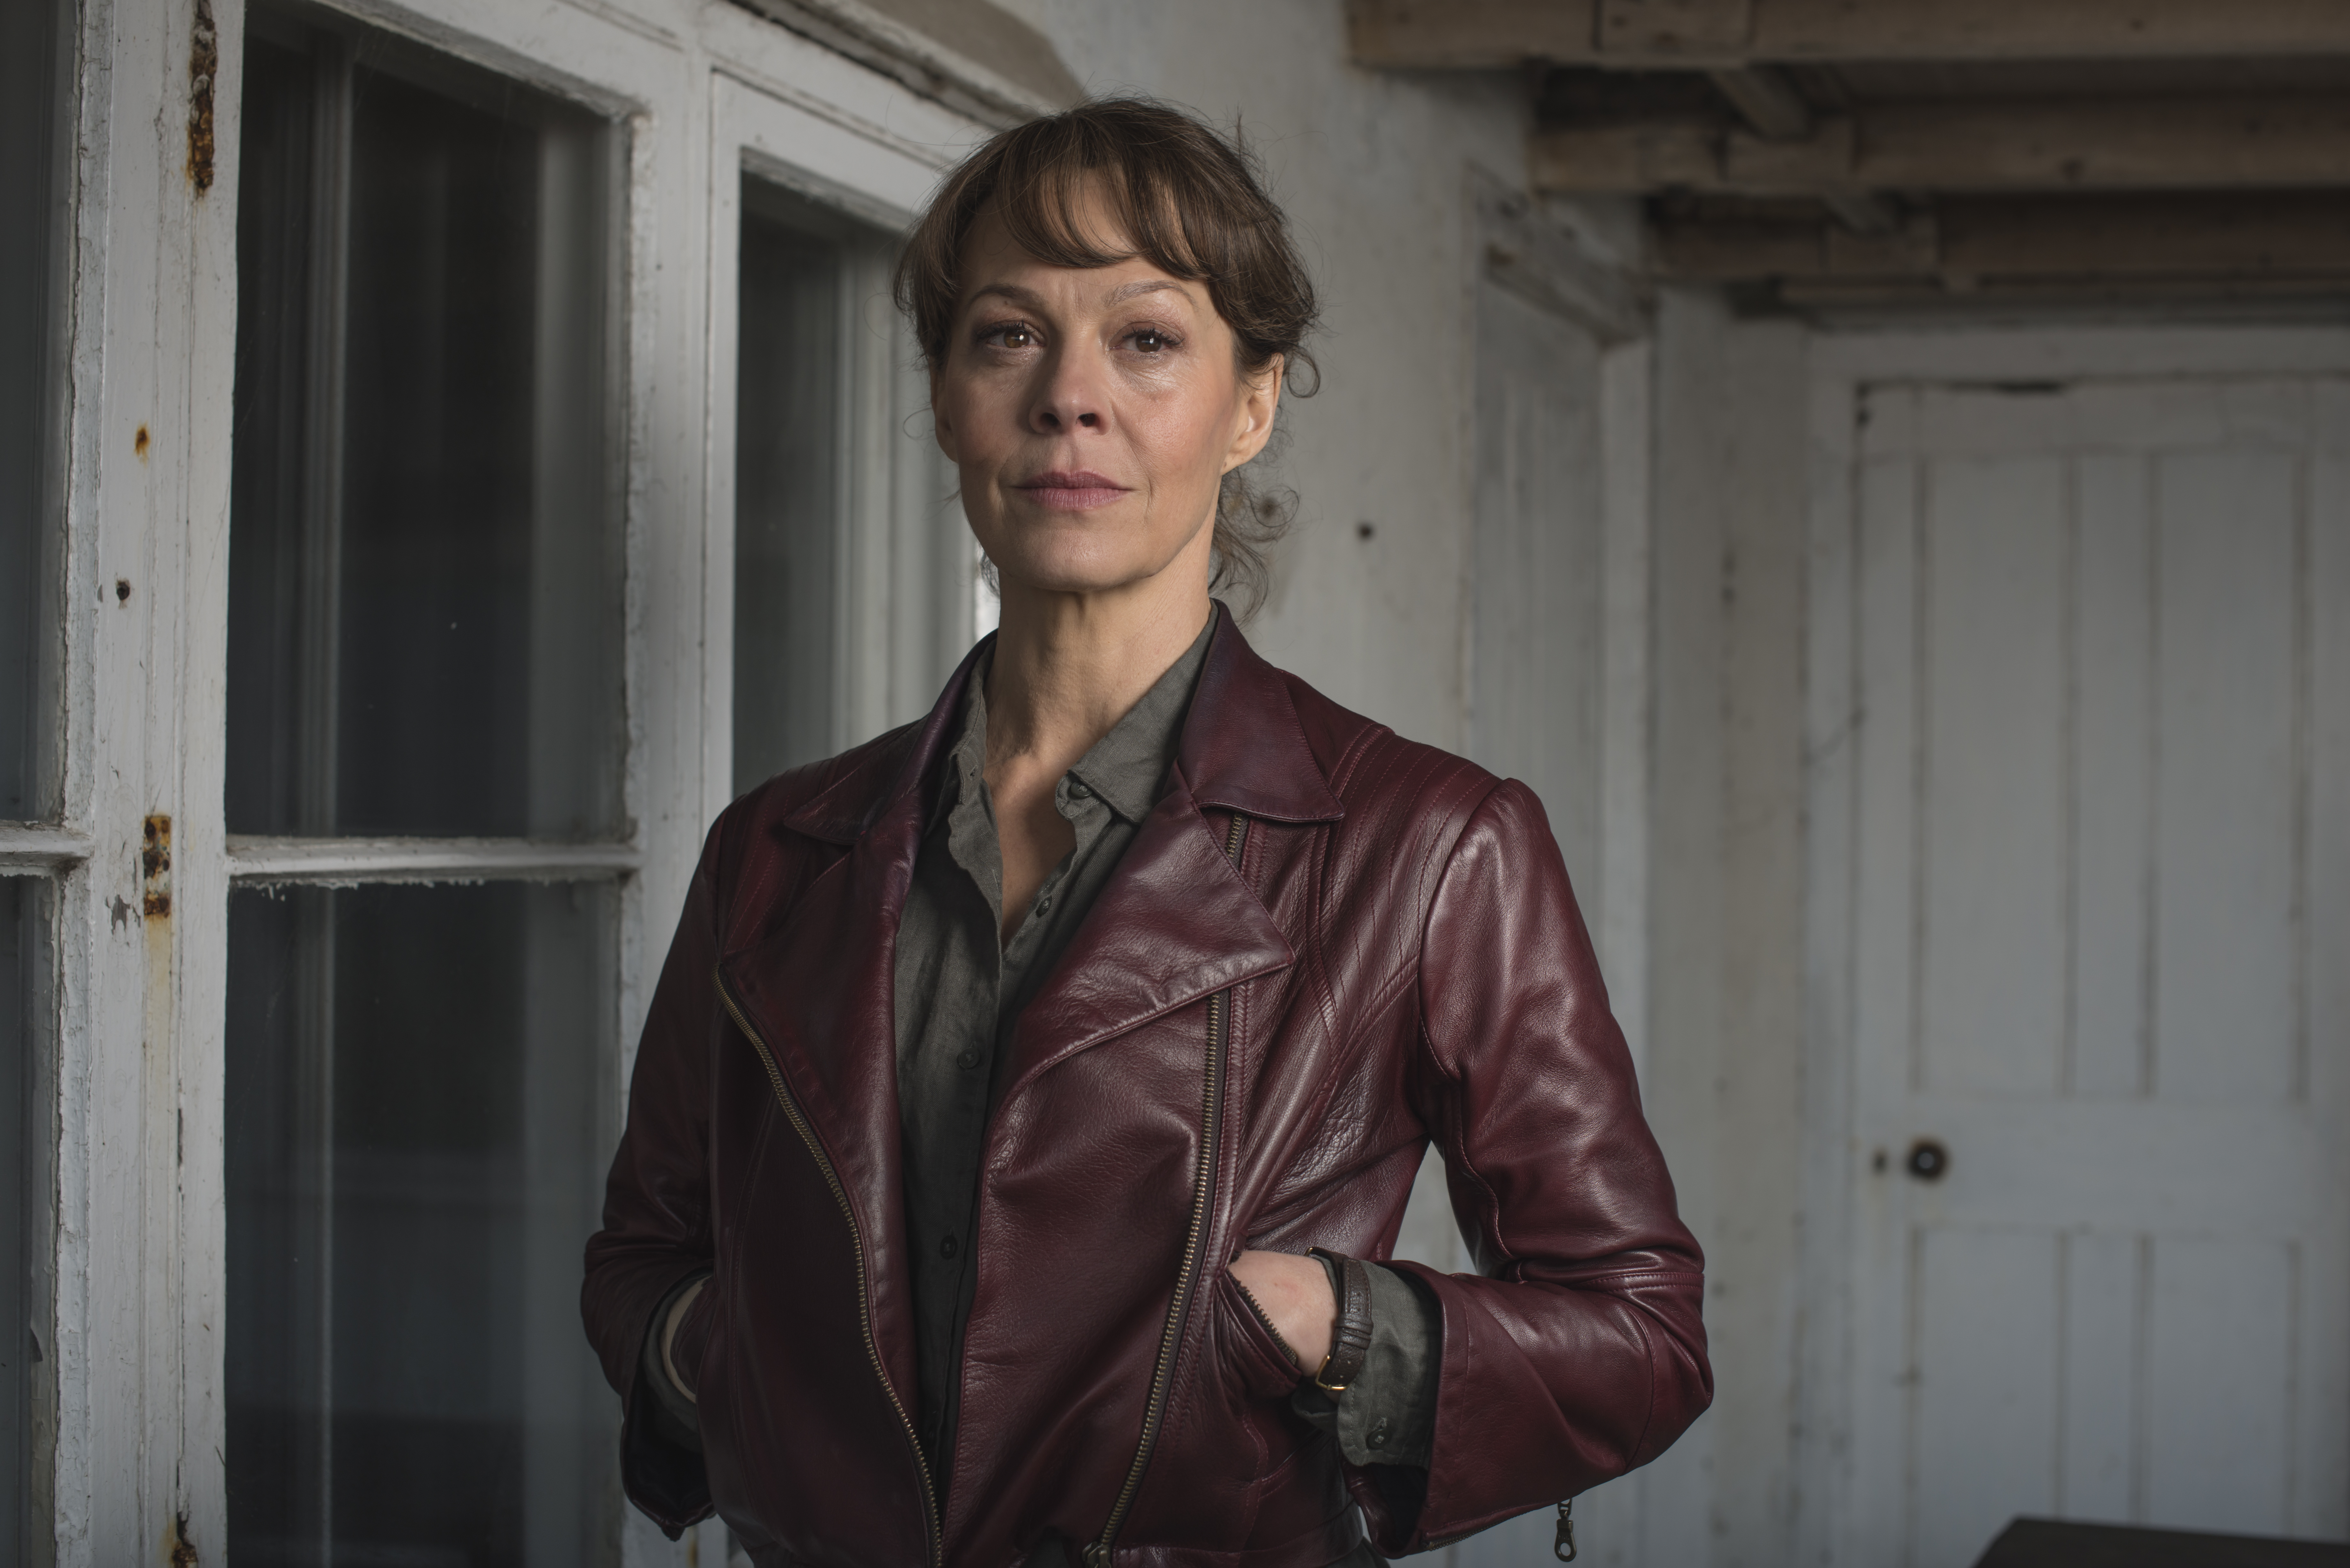 Scenes in new Helen McCrory drama Fearless were re-shot to include Donald Trump references